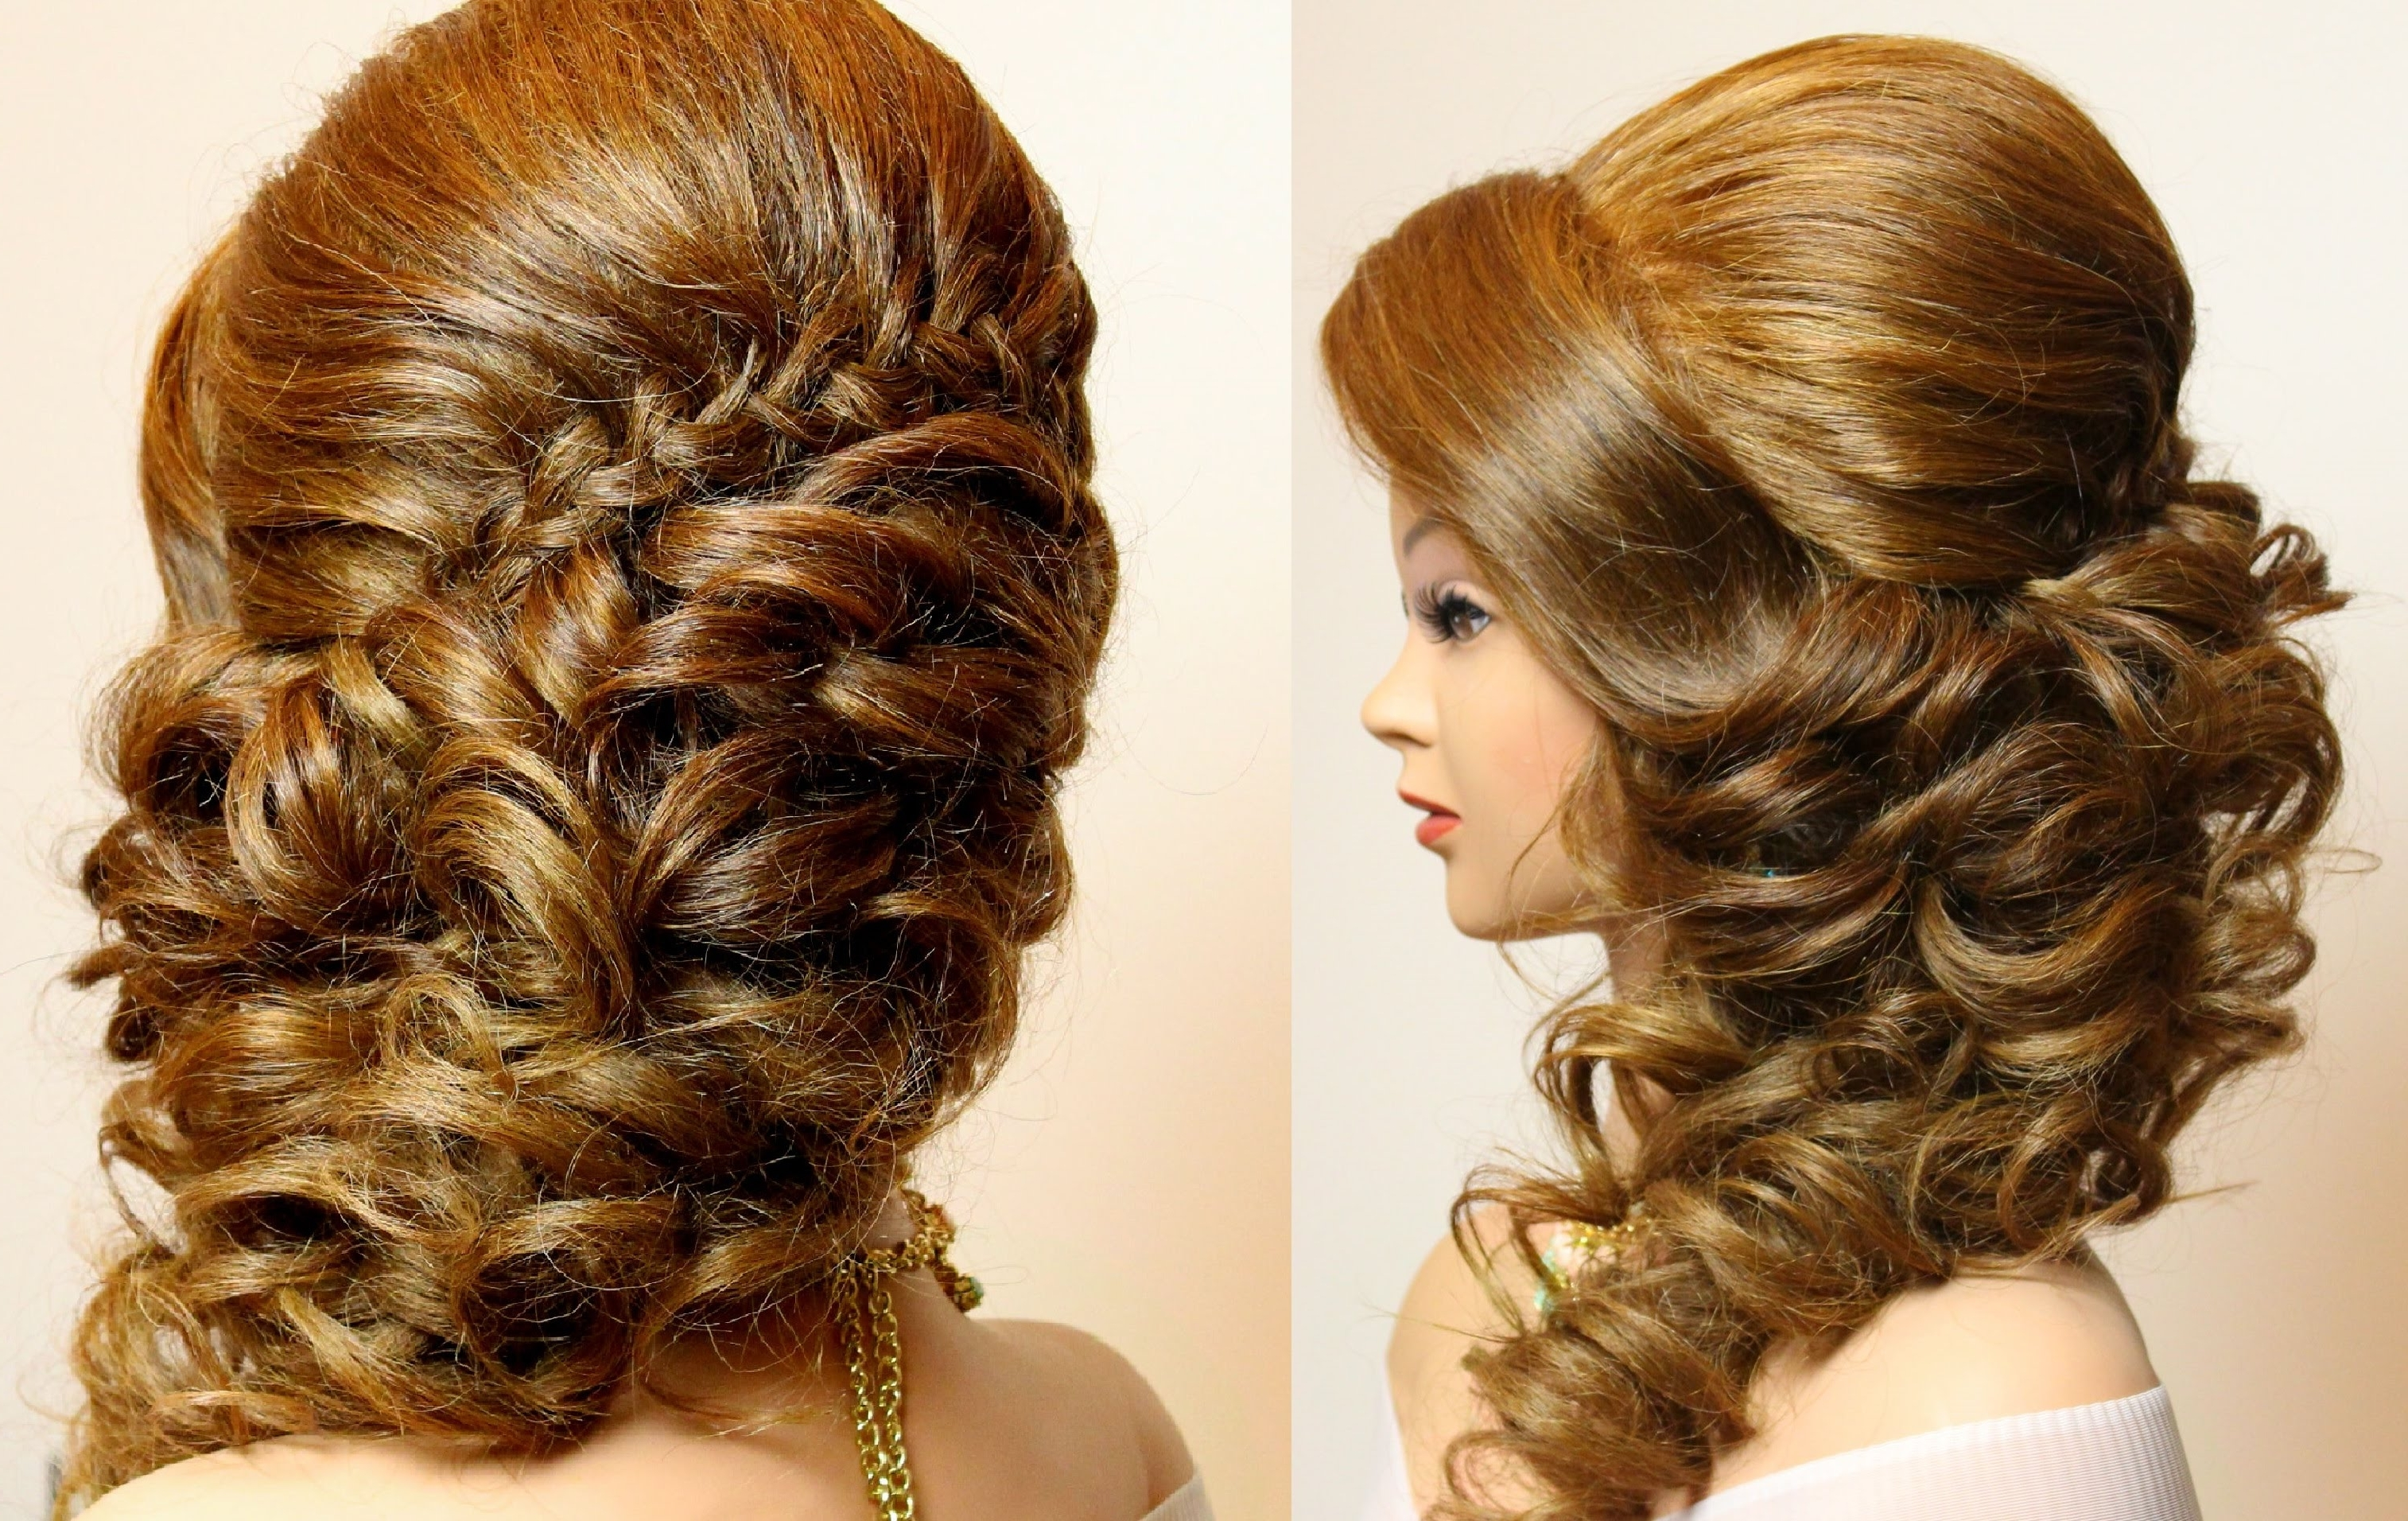 Bridal Hairstyle With Braid And Curls (View 6 of 15)